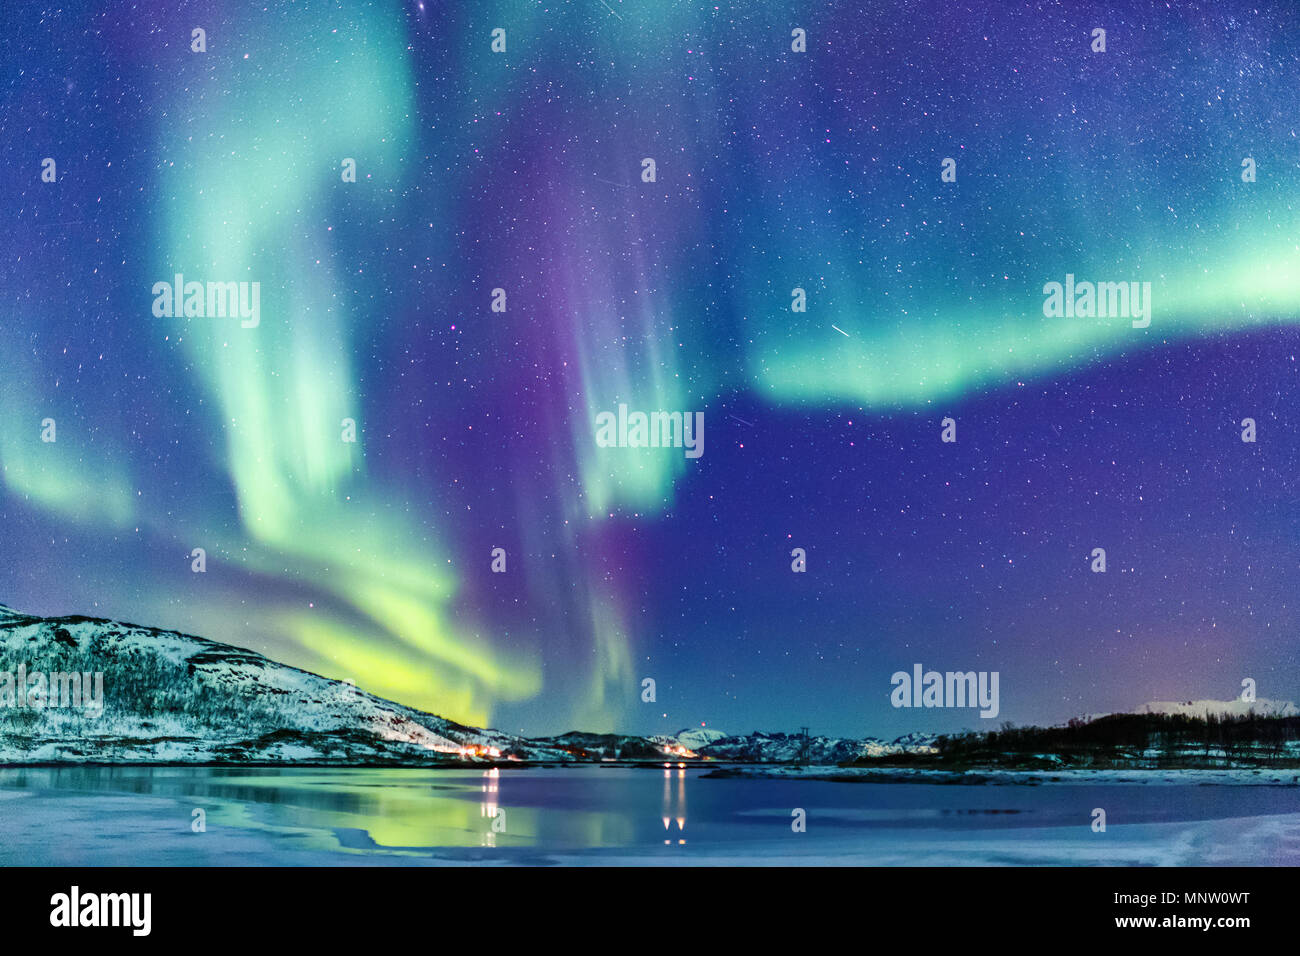 Incredible Northern lights Aurora Borealis activity above the coast in Norway - Stock Image